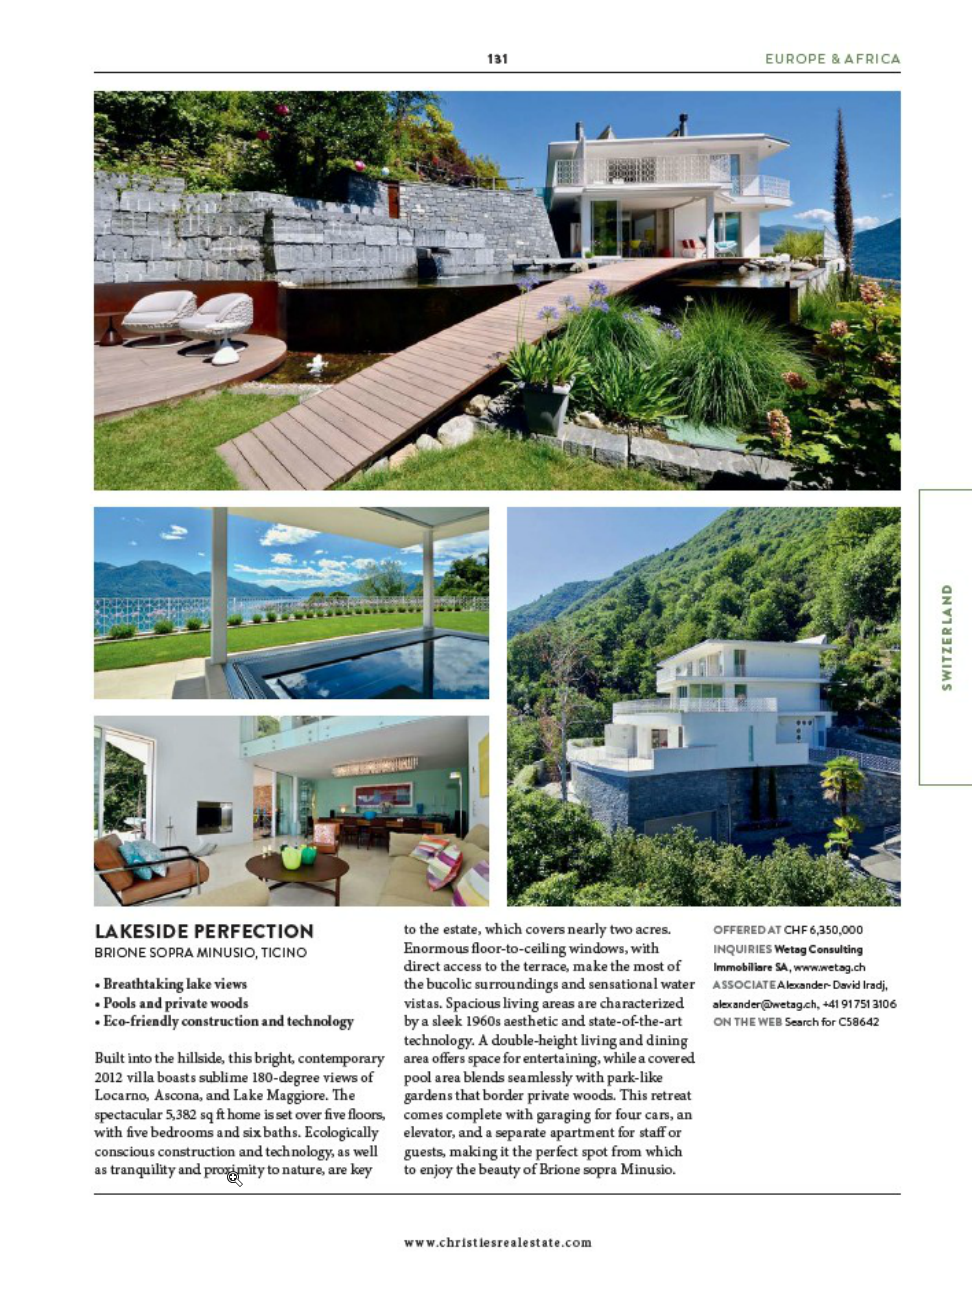 Luxury real estate in Switzerland for sale at page 131 in Christie's International Real Estate Magazine